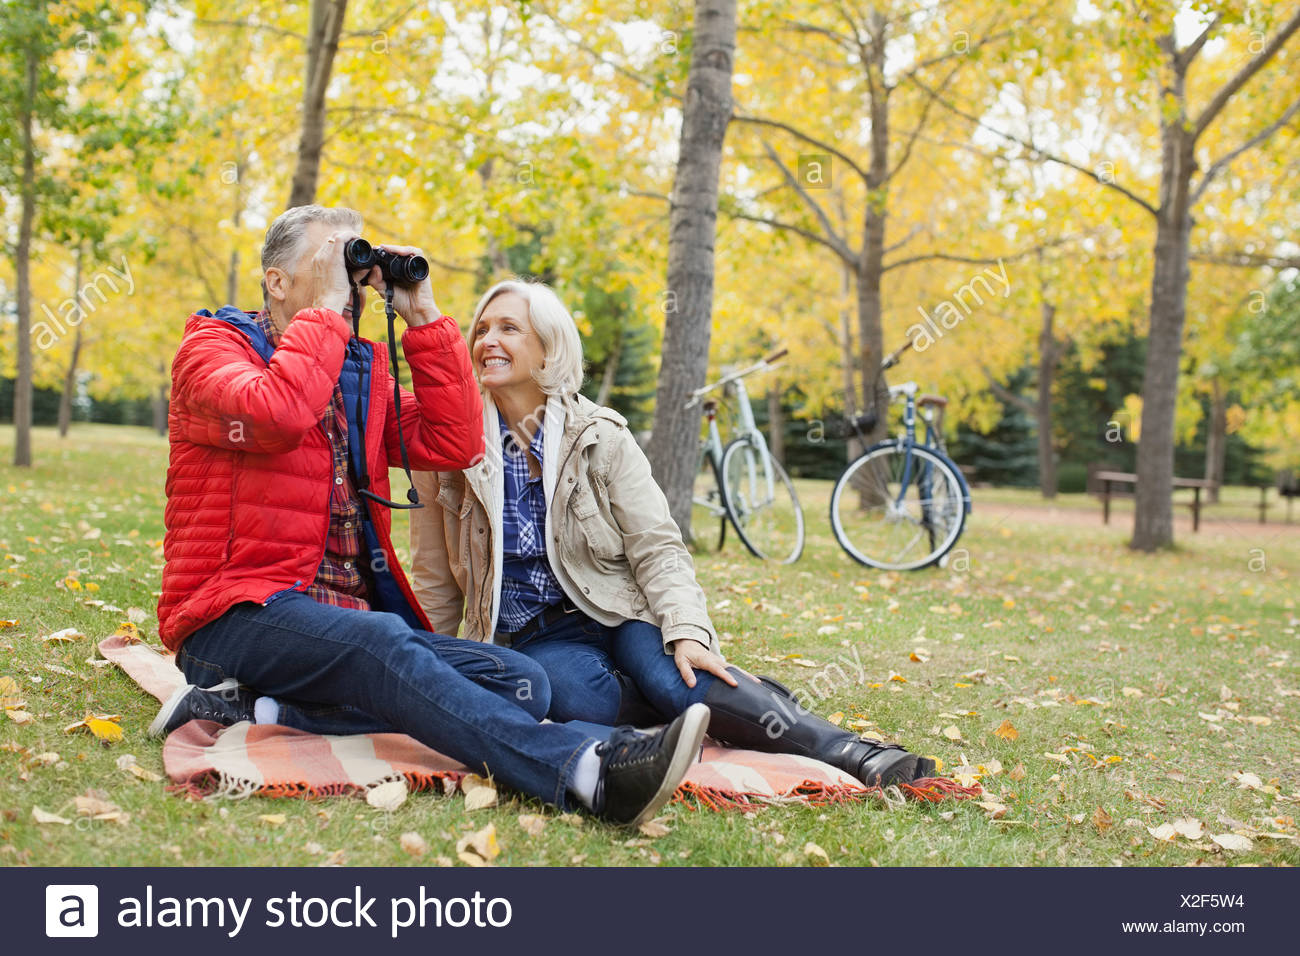 Full length of smiling woman with man looking through binoculars at park - Stock Image